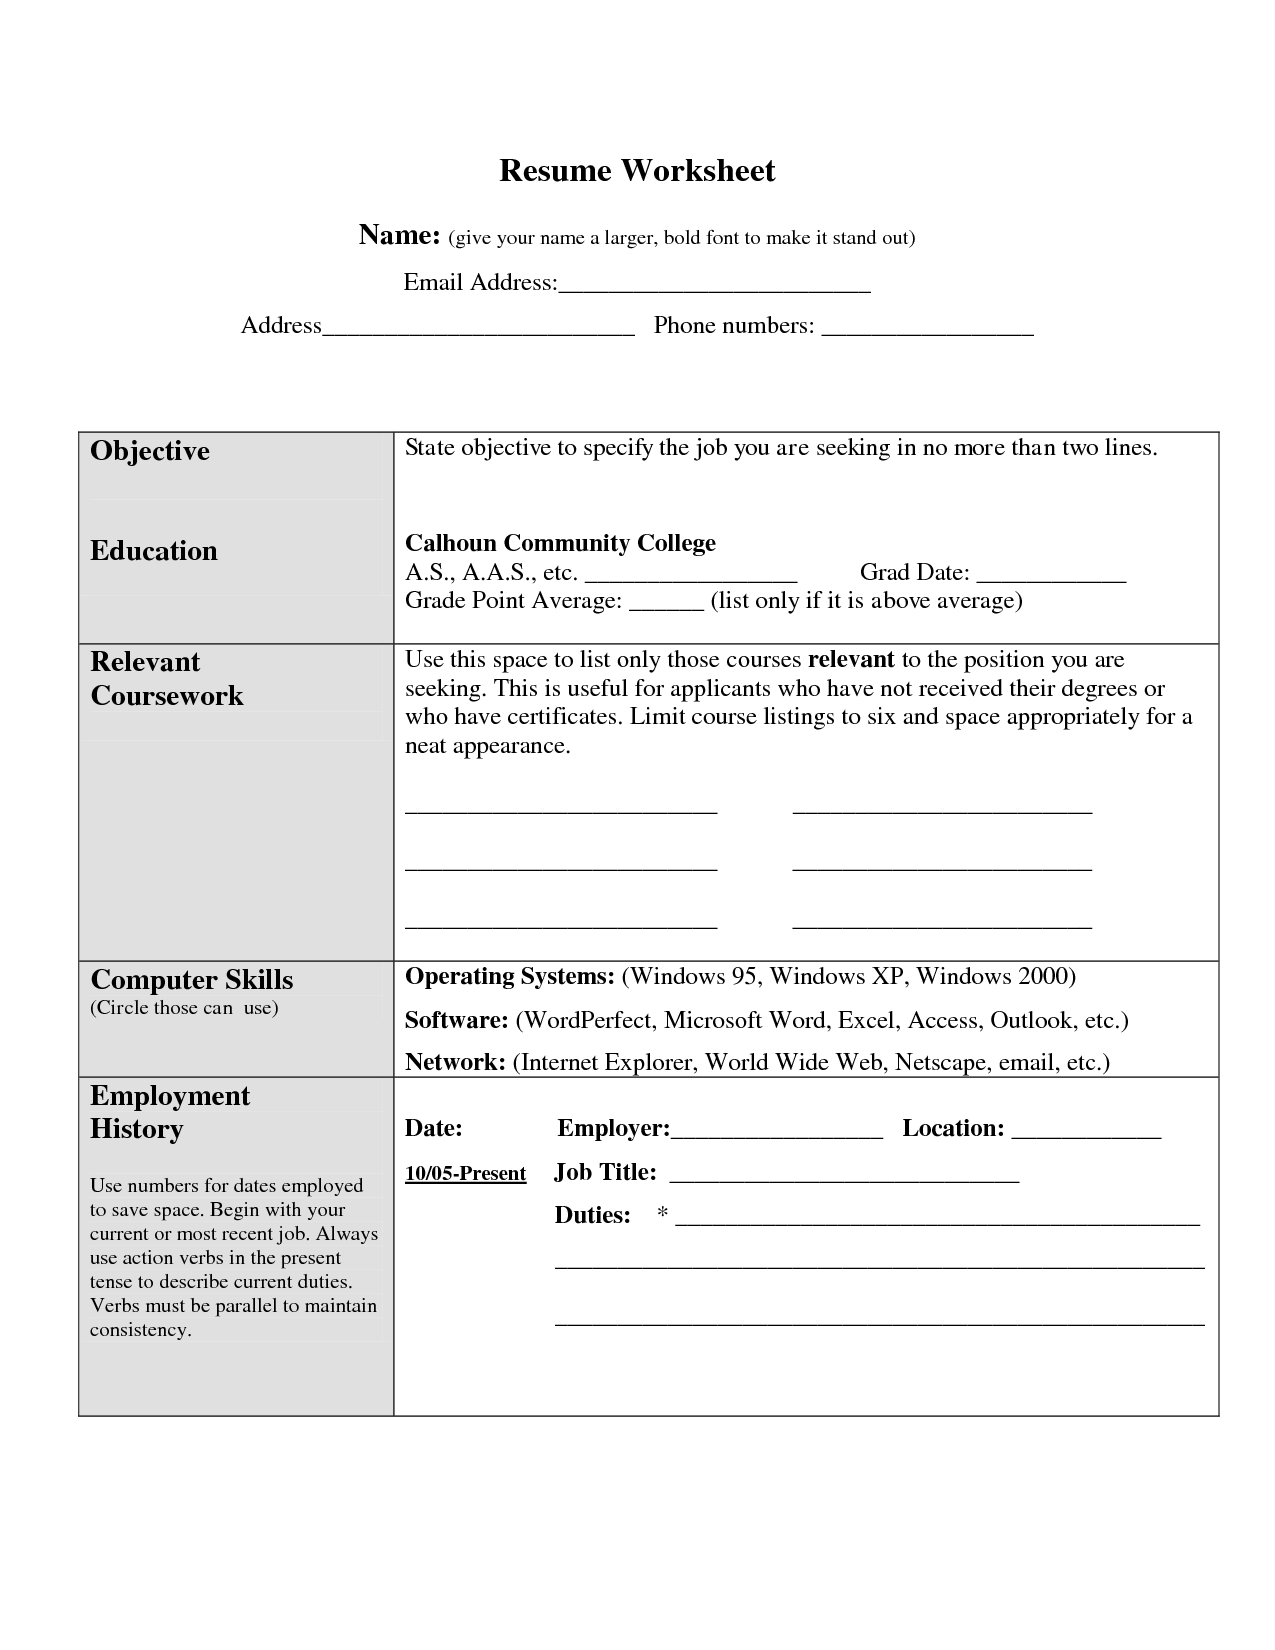 worksheet. Resume Worksheet For High School Students ...